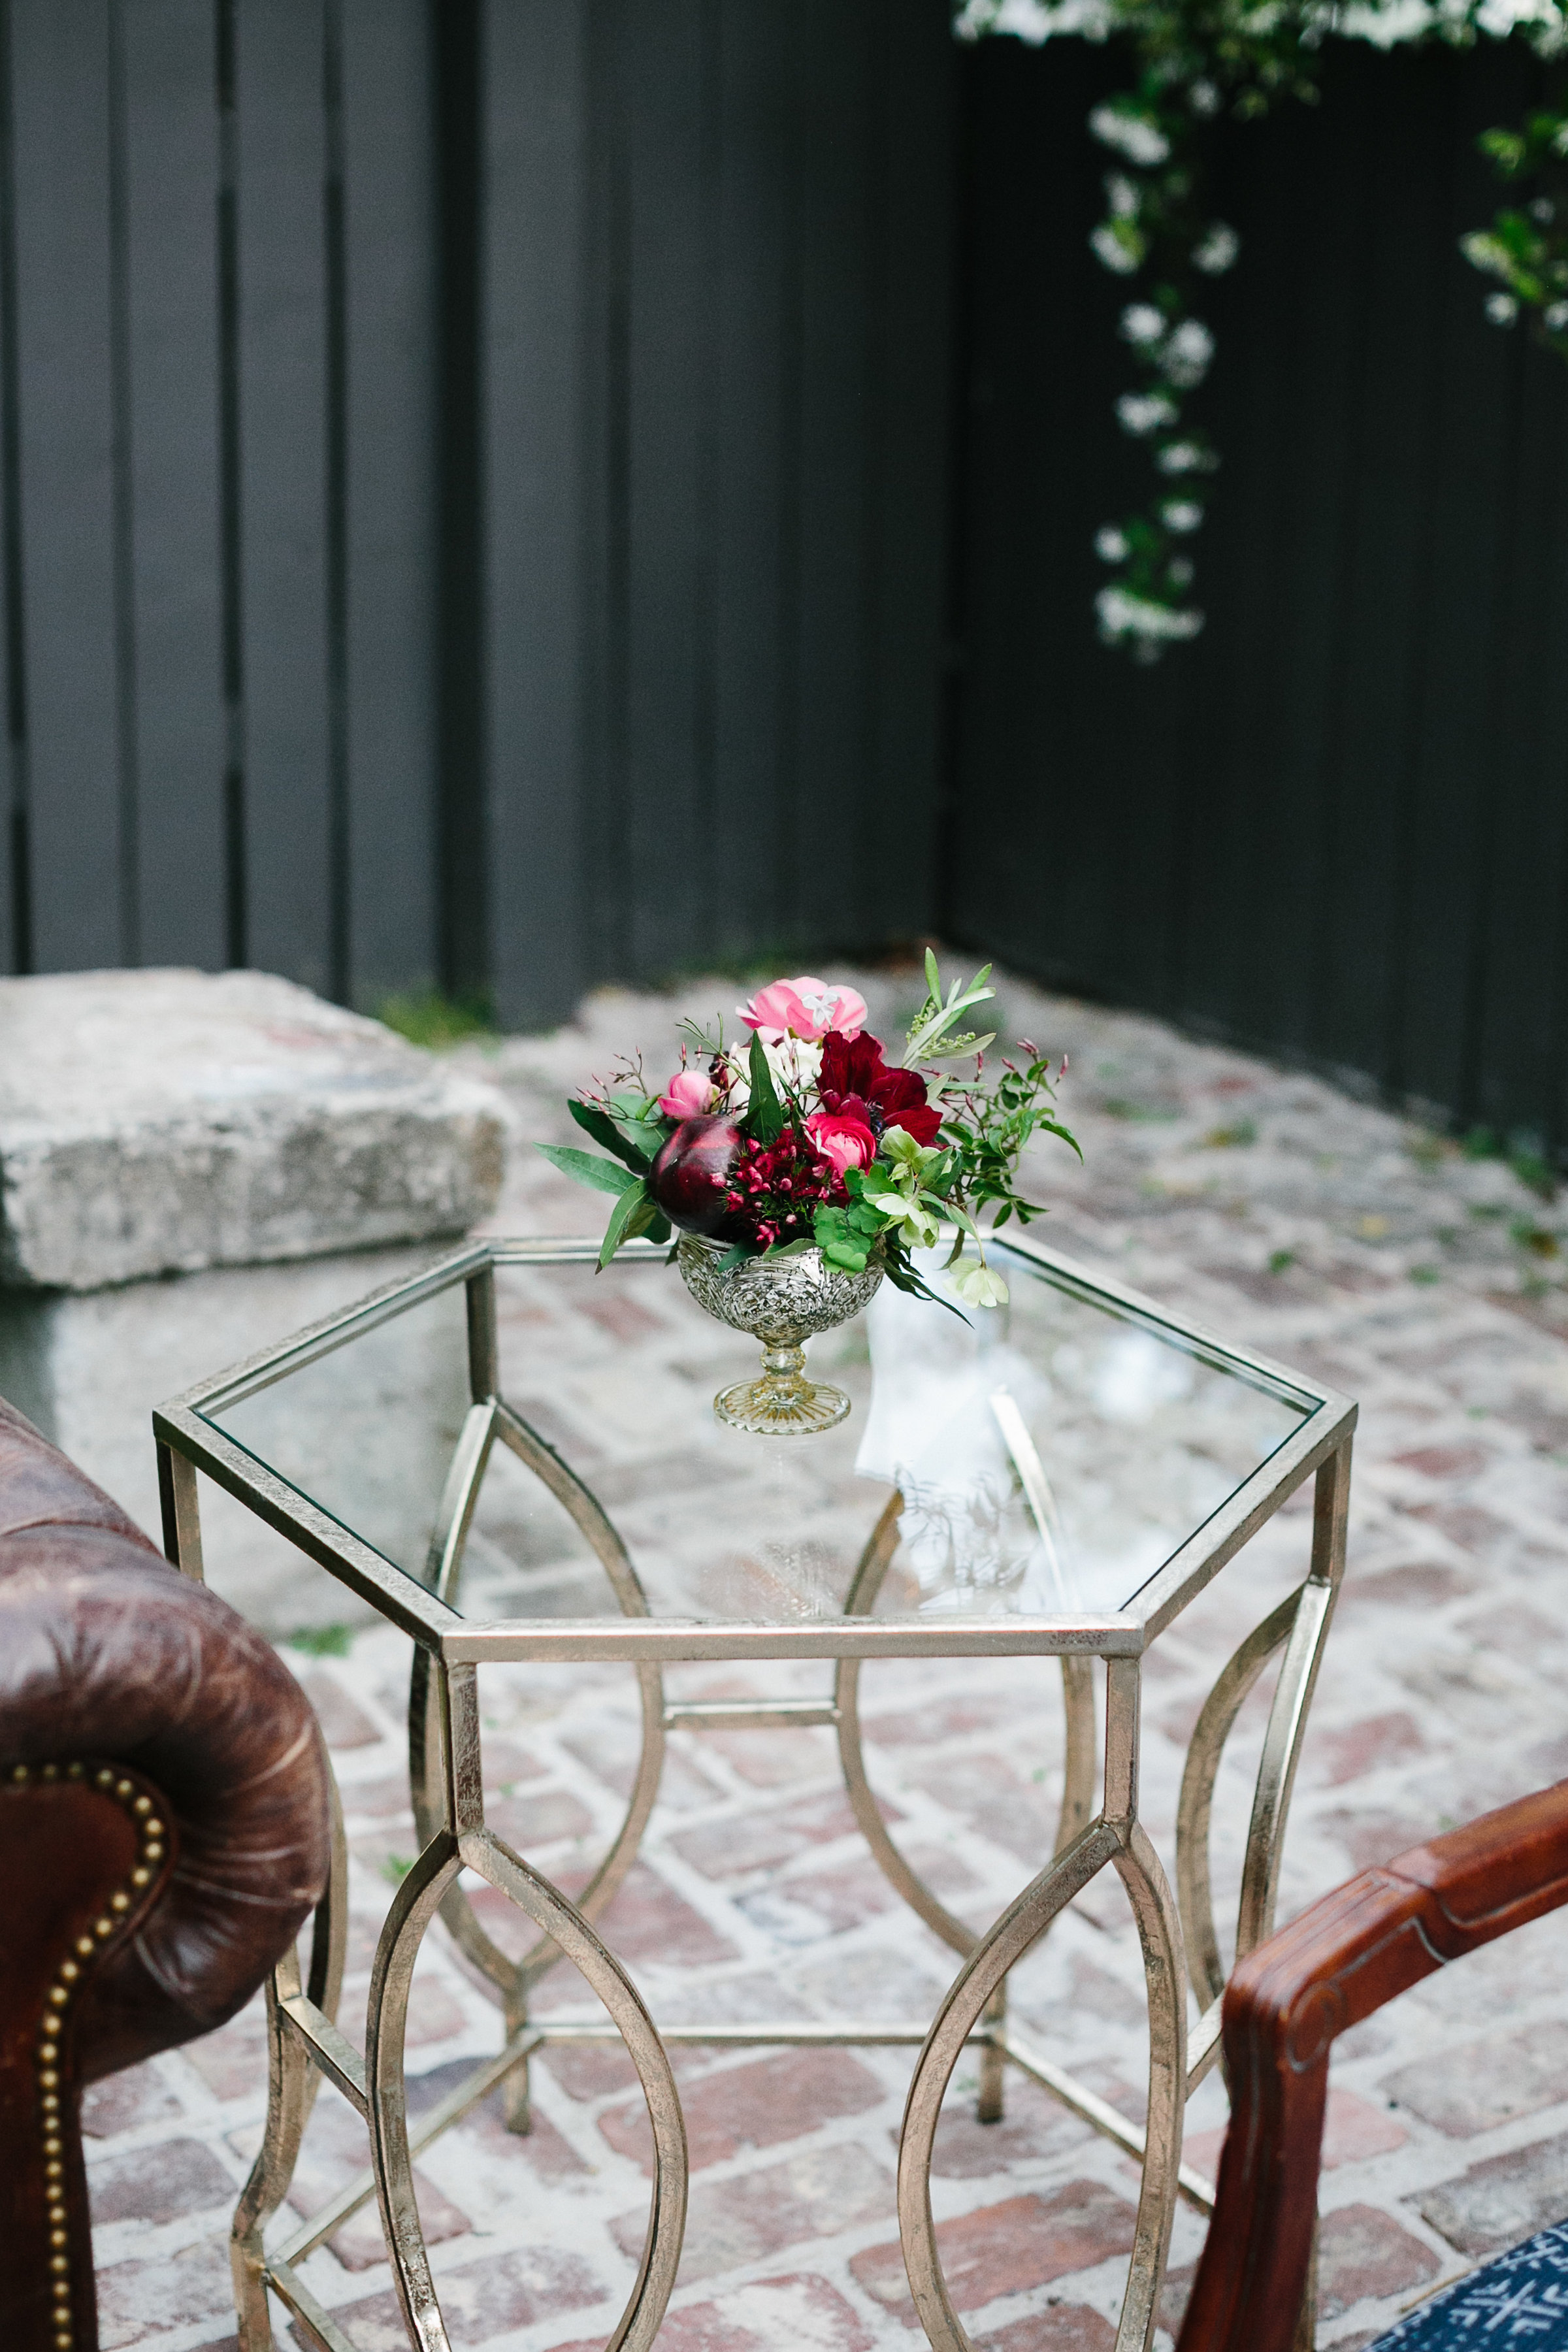 Gold end table from The French Eclectic at Leon's Oyster Shed  //  Charleston photos by Elizabeth Ervin  //  A Lowcountry Wedding Magazine & Blog